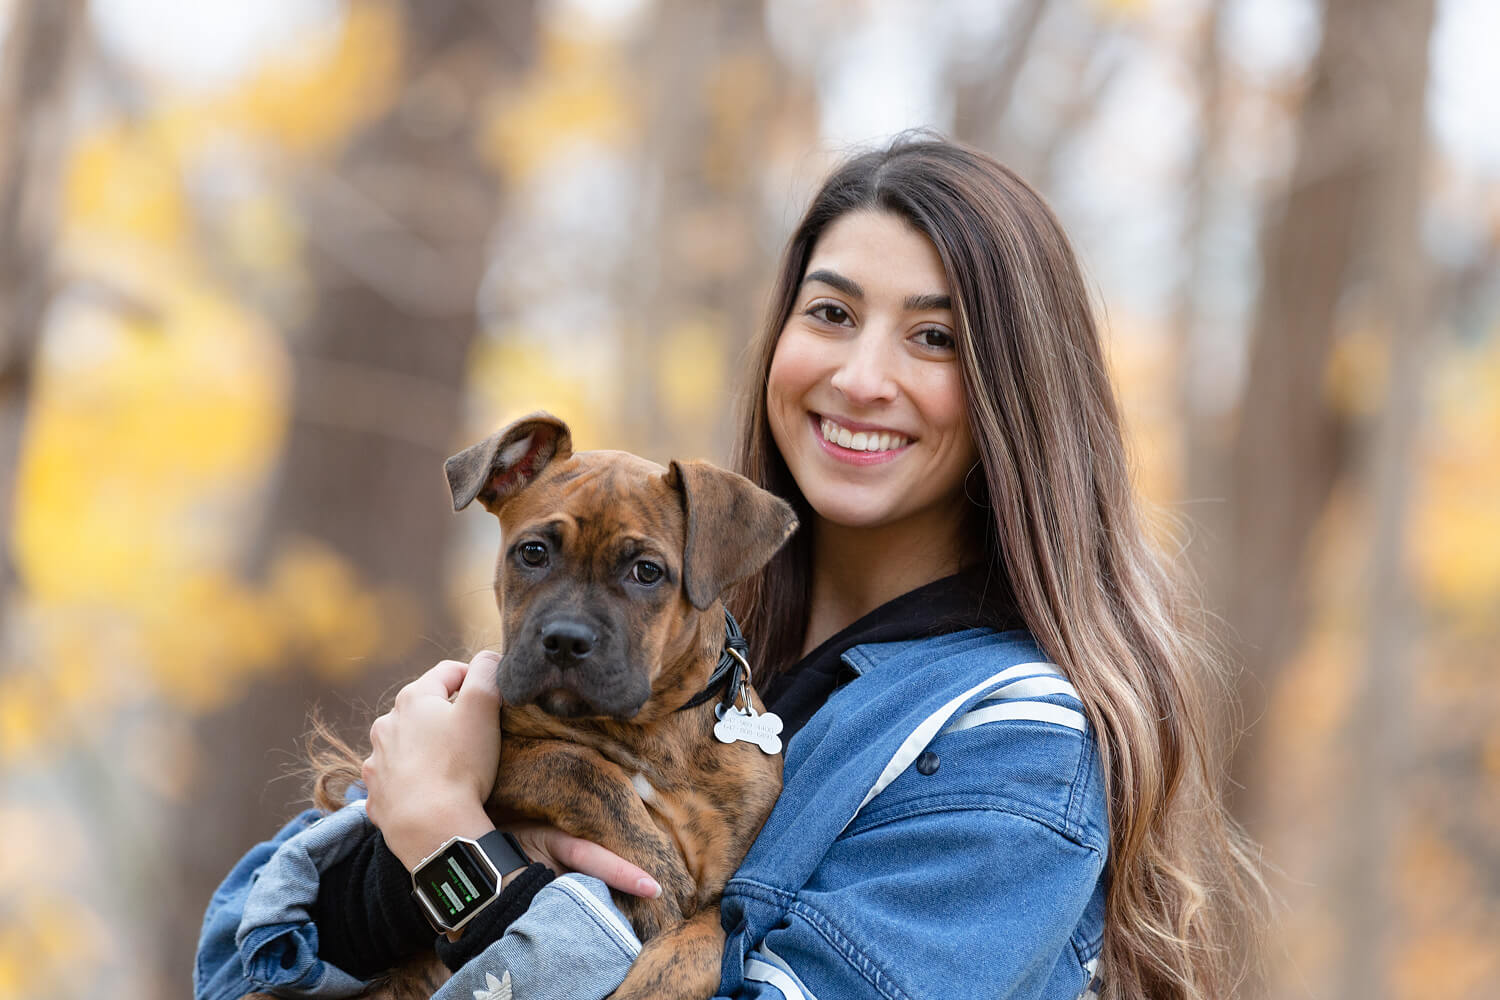 Puppy-and-People-Photography-North-York-Ontario.jpg